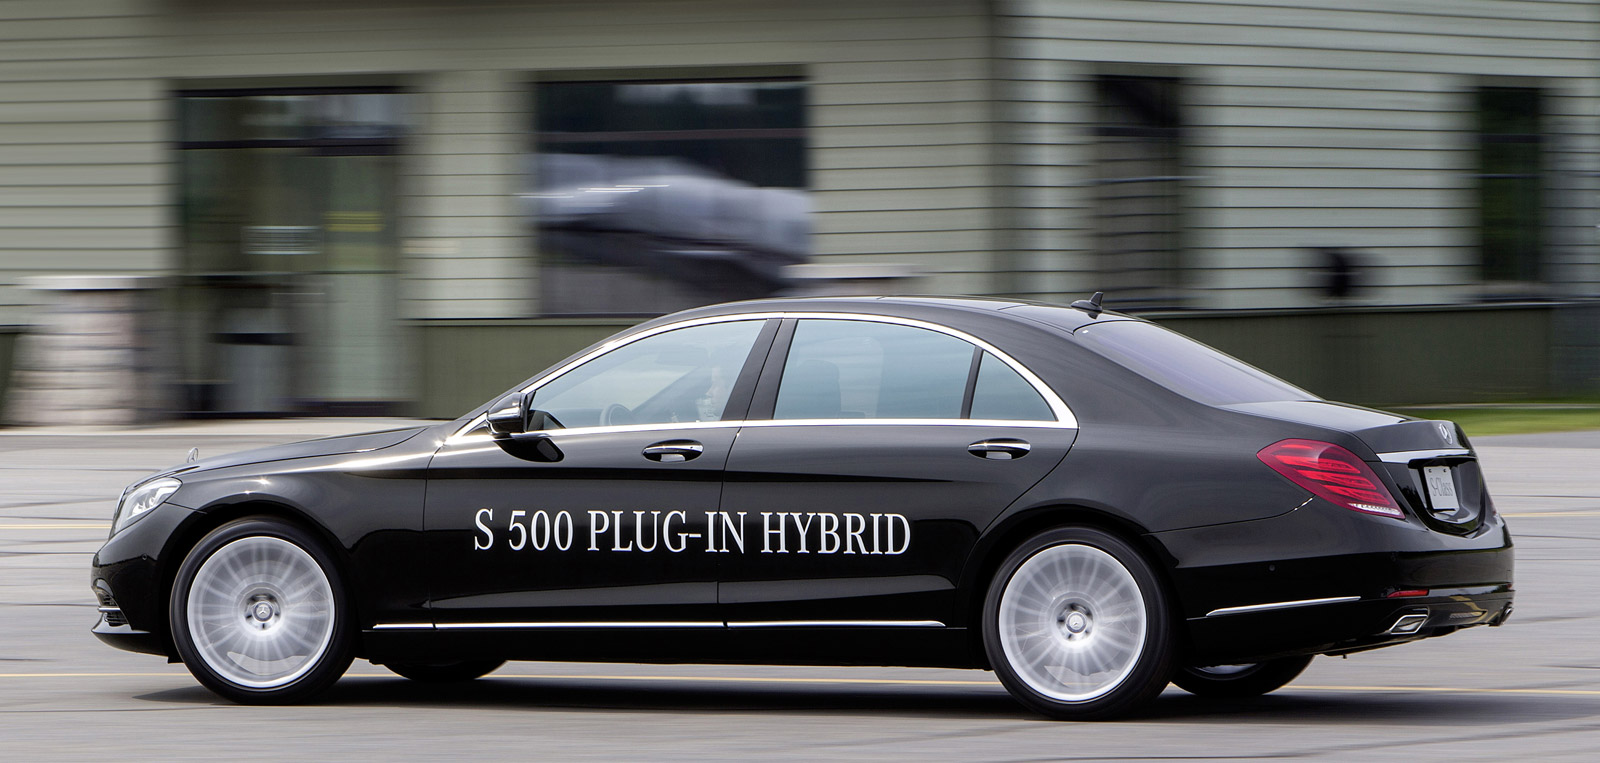 Mercedes Benz S500 Plug In Hybrid 0 60 In 5 5 Seconds And